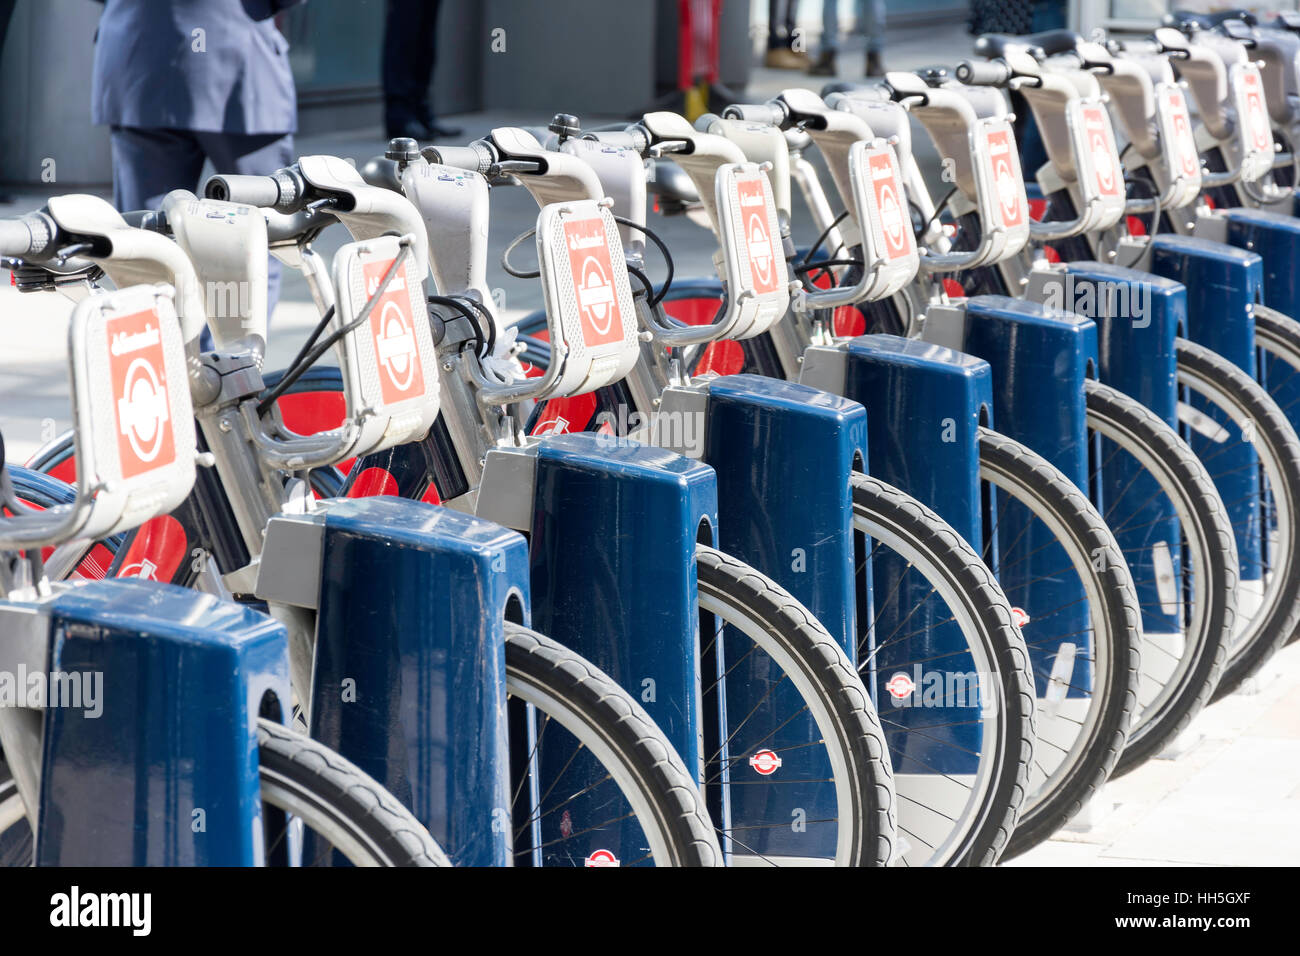 Santander Cycles self-hire bicycles, Bishopsgate, City of London, Greater London, England, United Kingdom - Stock Image